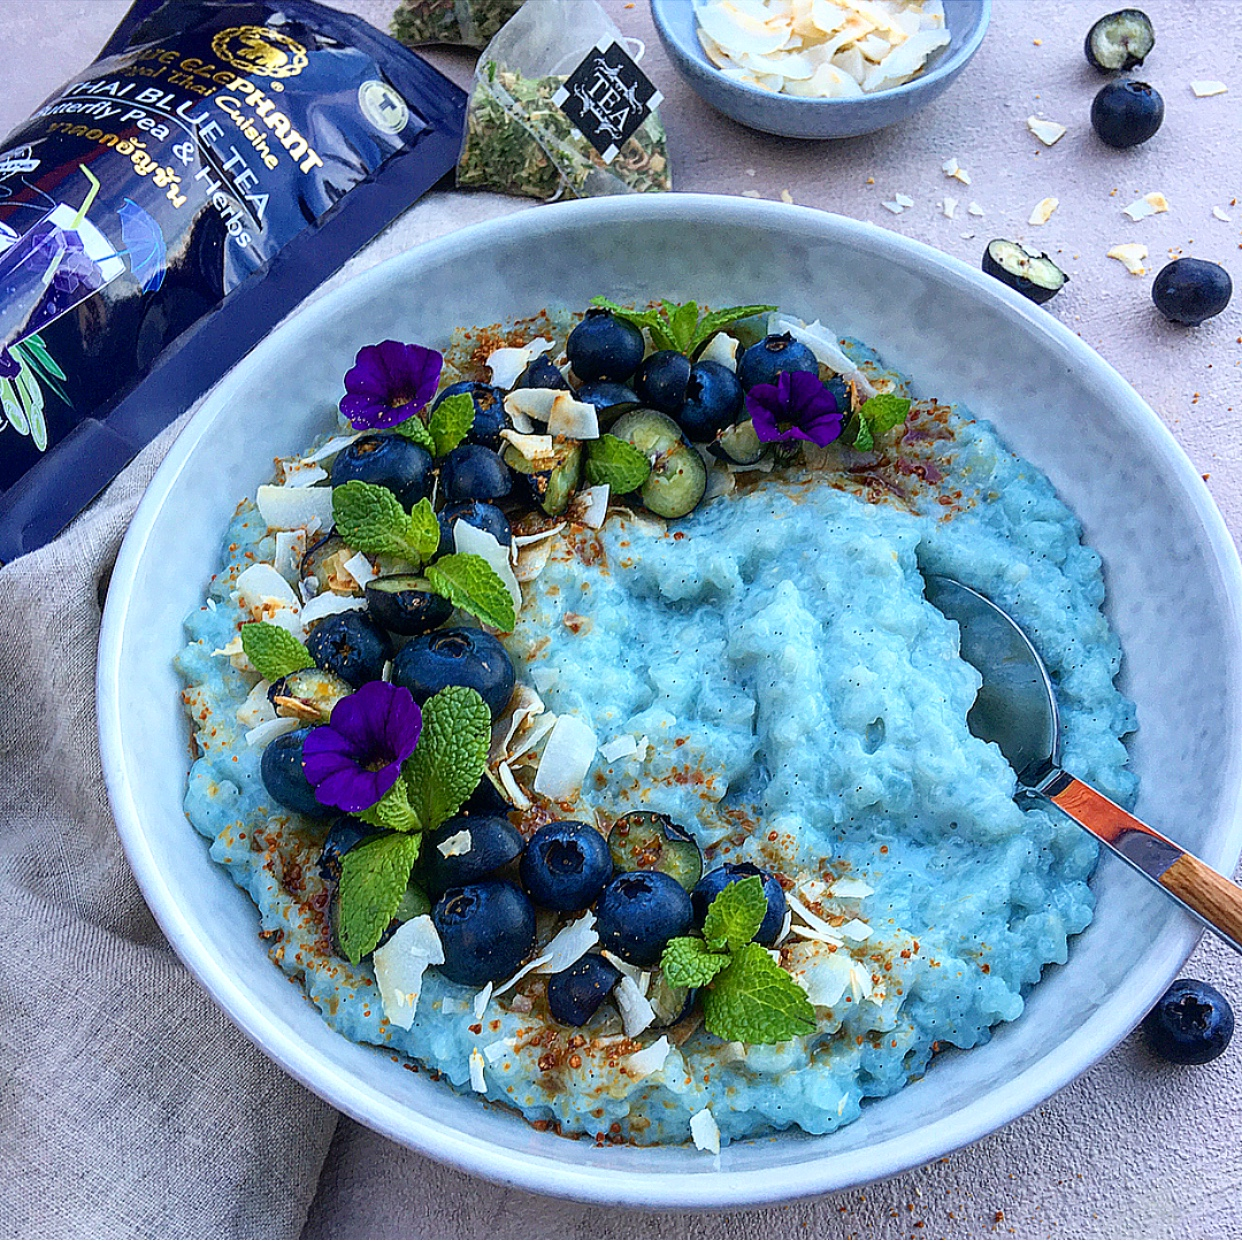 Are you ready for a serious cozy and creamy blue rice pud? I know I am!